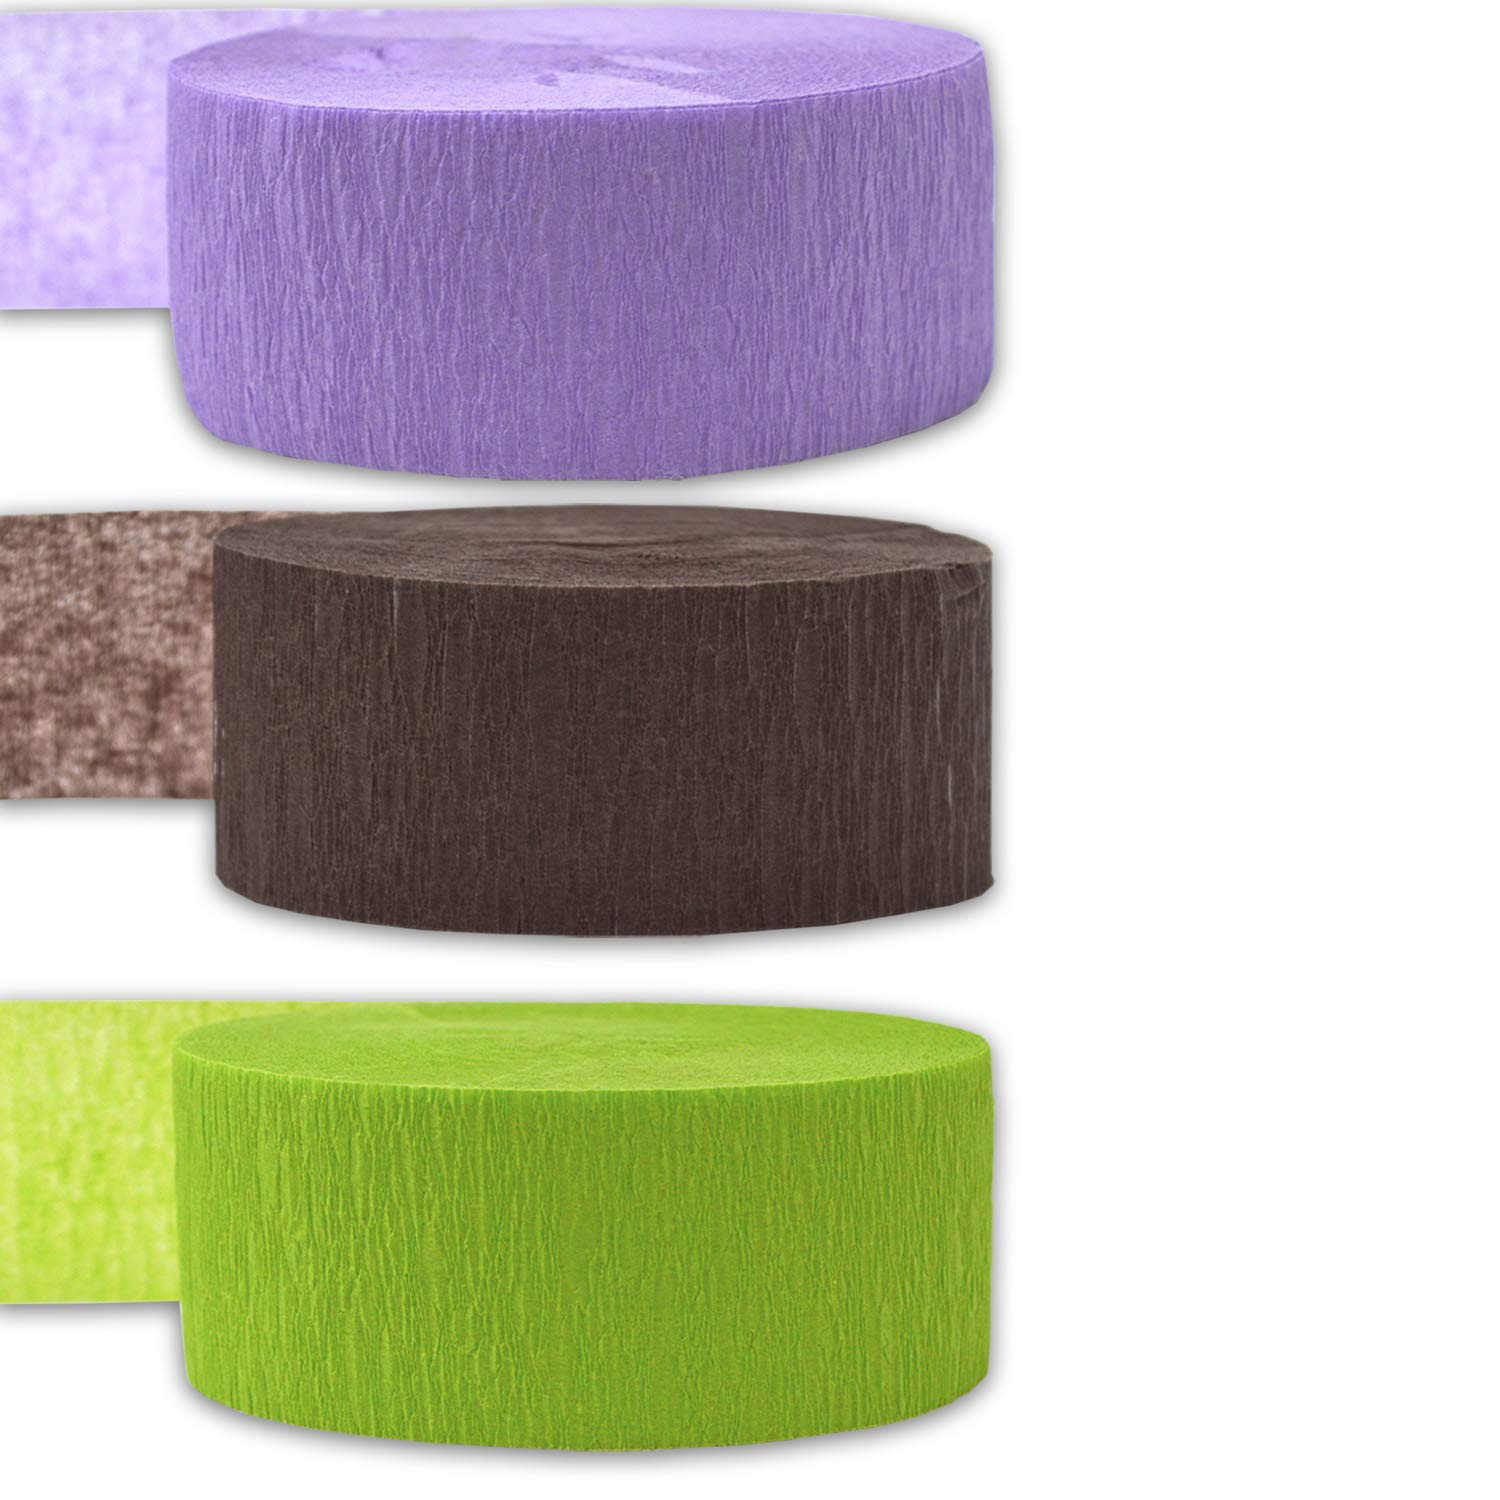 Brown 3 rolls per color, 81 foot each roll Made in USA Flame Resistant Lime Green 9 rolls 739 ft - For party Decorations and Crafts 243 per color 3 Colors Crepe Party Streamers Bleed Resistant French Violet